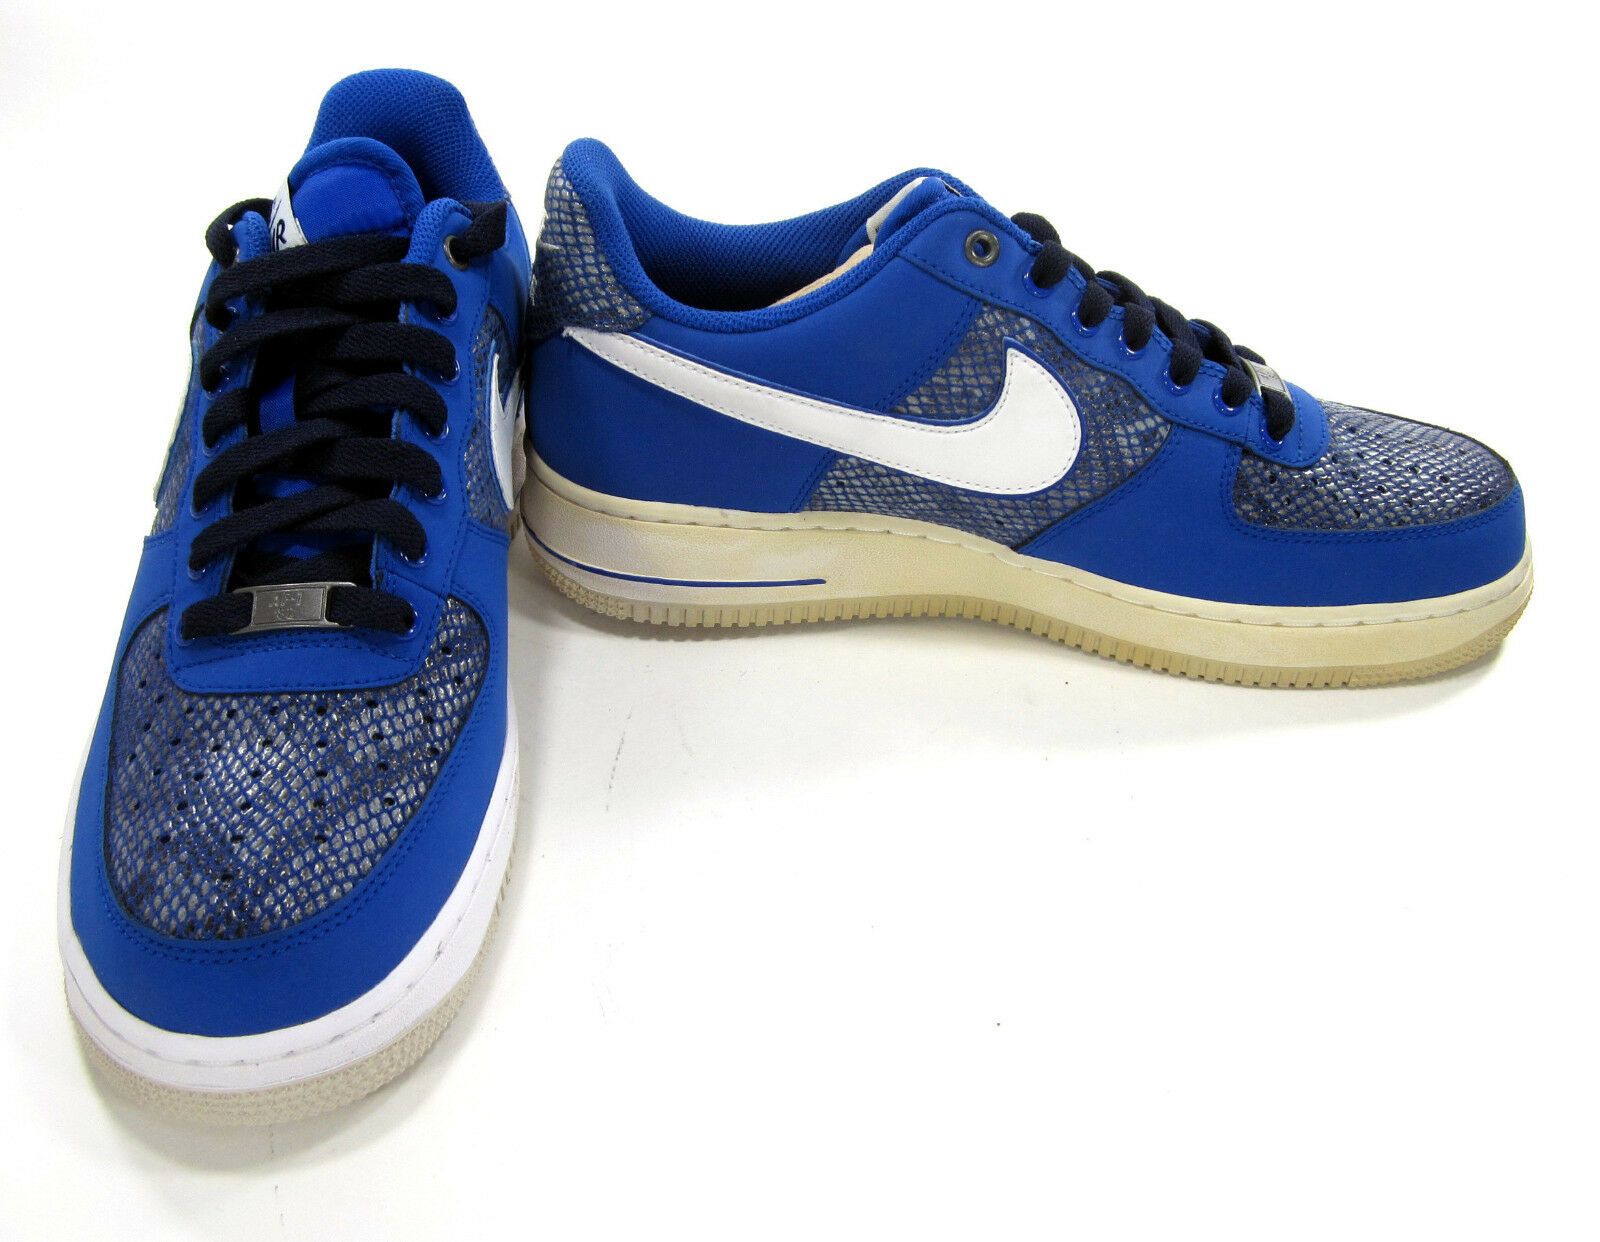 Nike shoes Air Force 1 Low Low Low Game Royal White Blackened bluee Sneakers Size 9 640e58